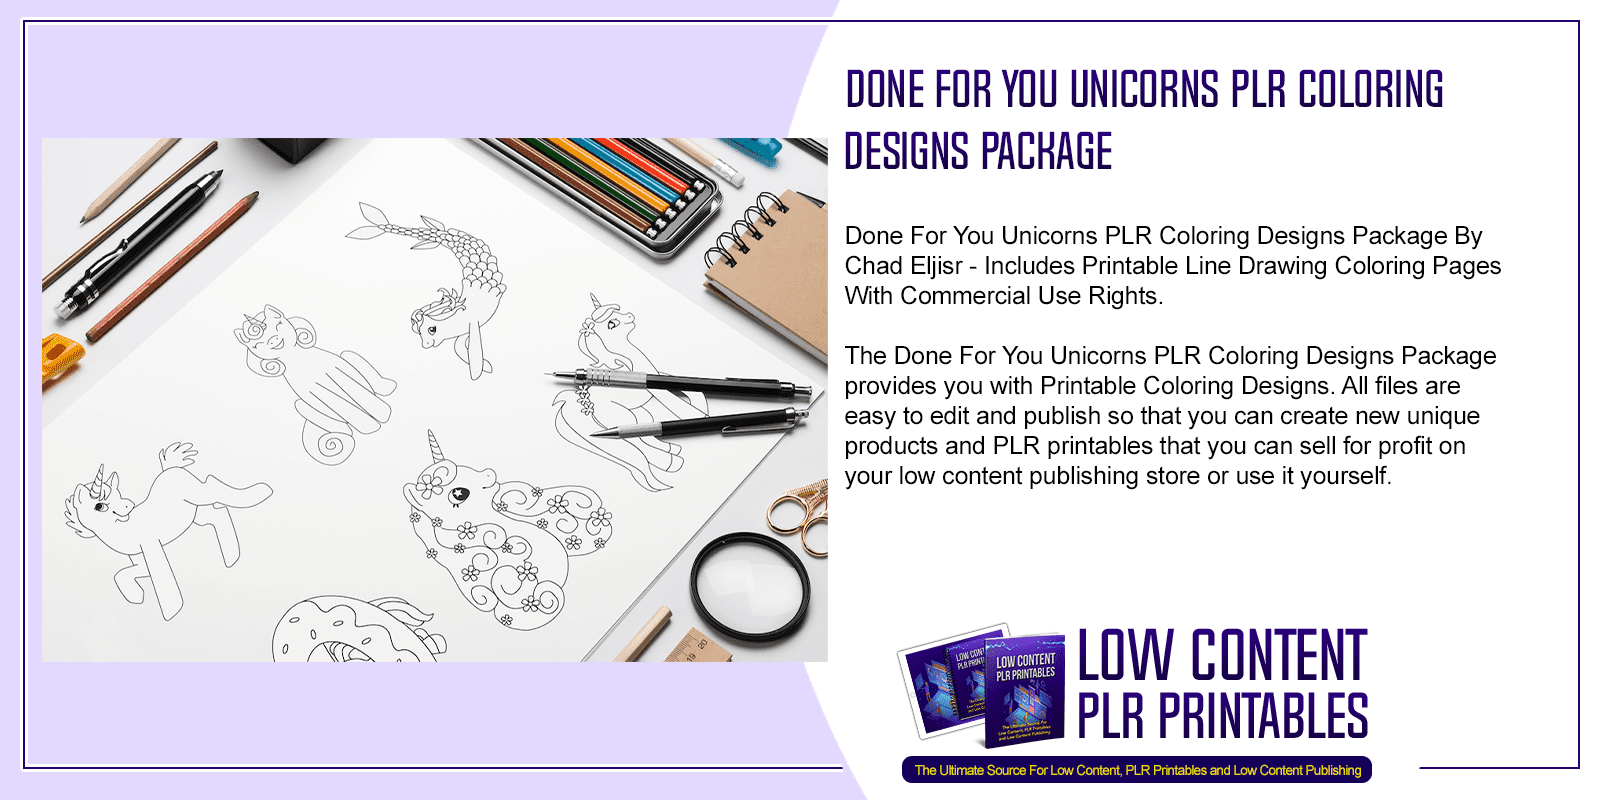 Done For You Unicorns PLR Coloring Designs Package